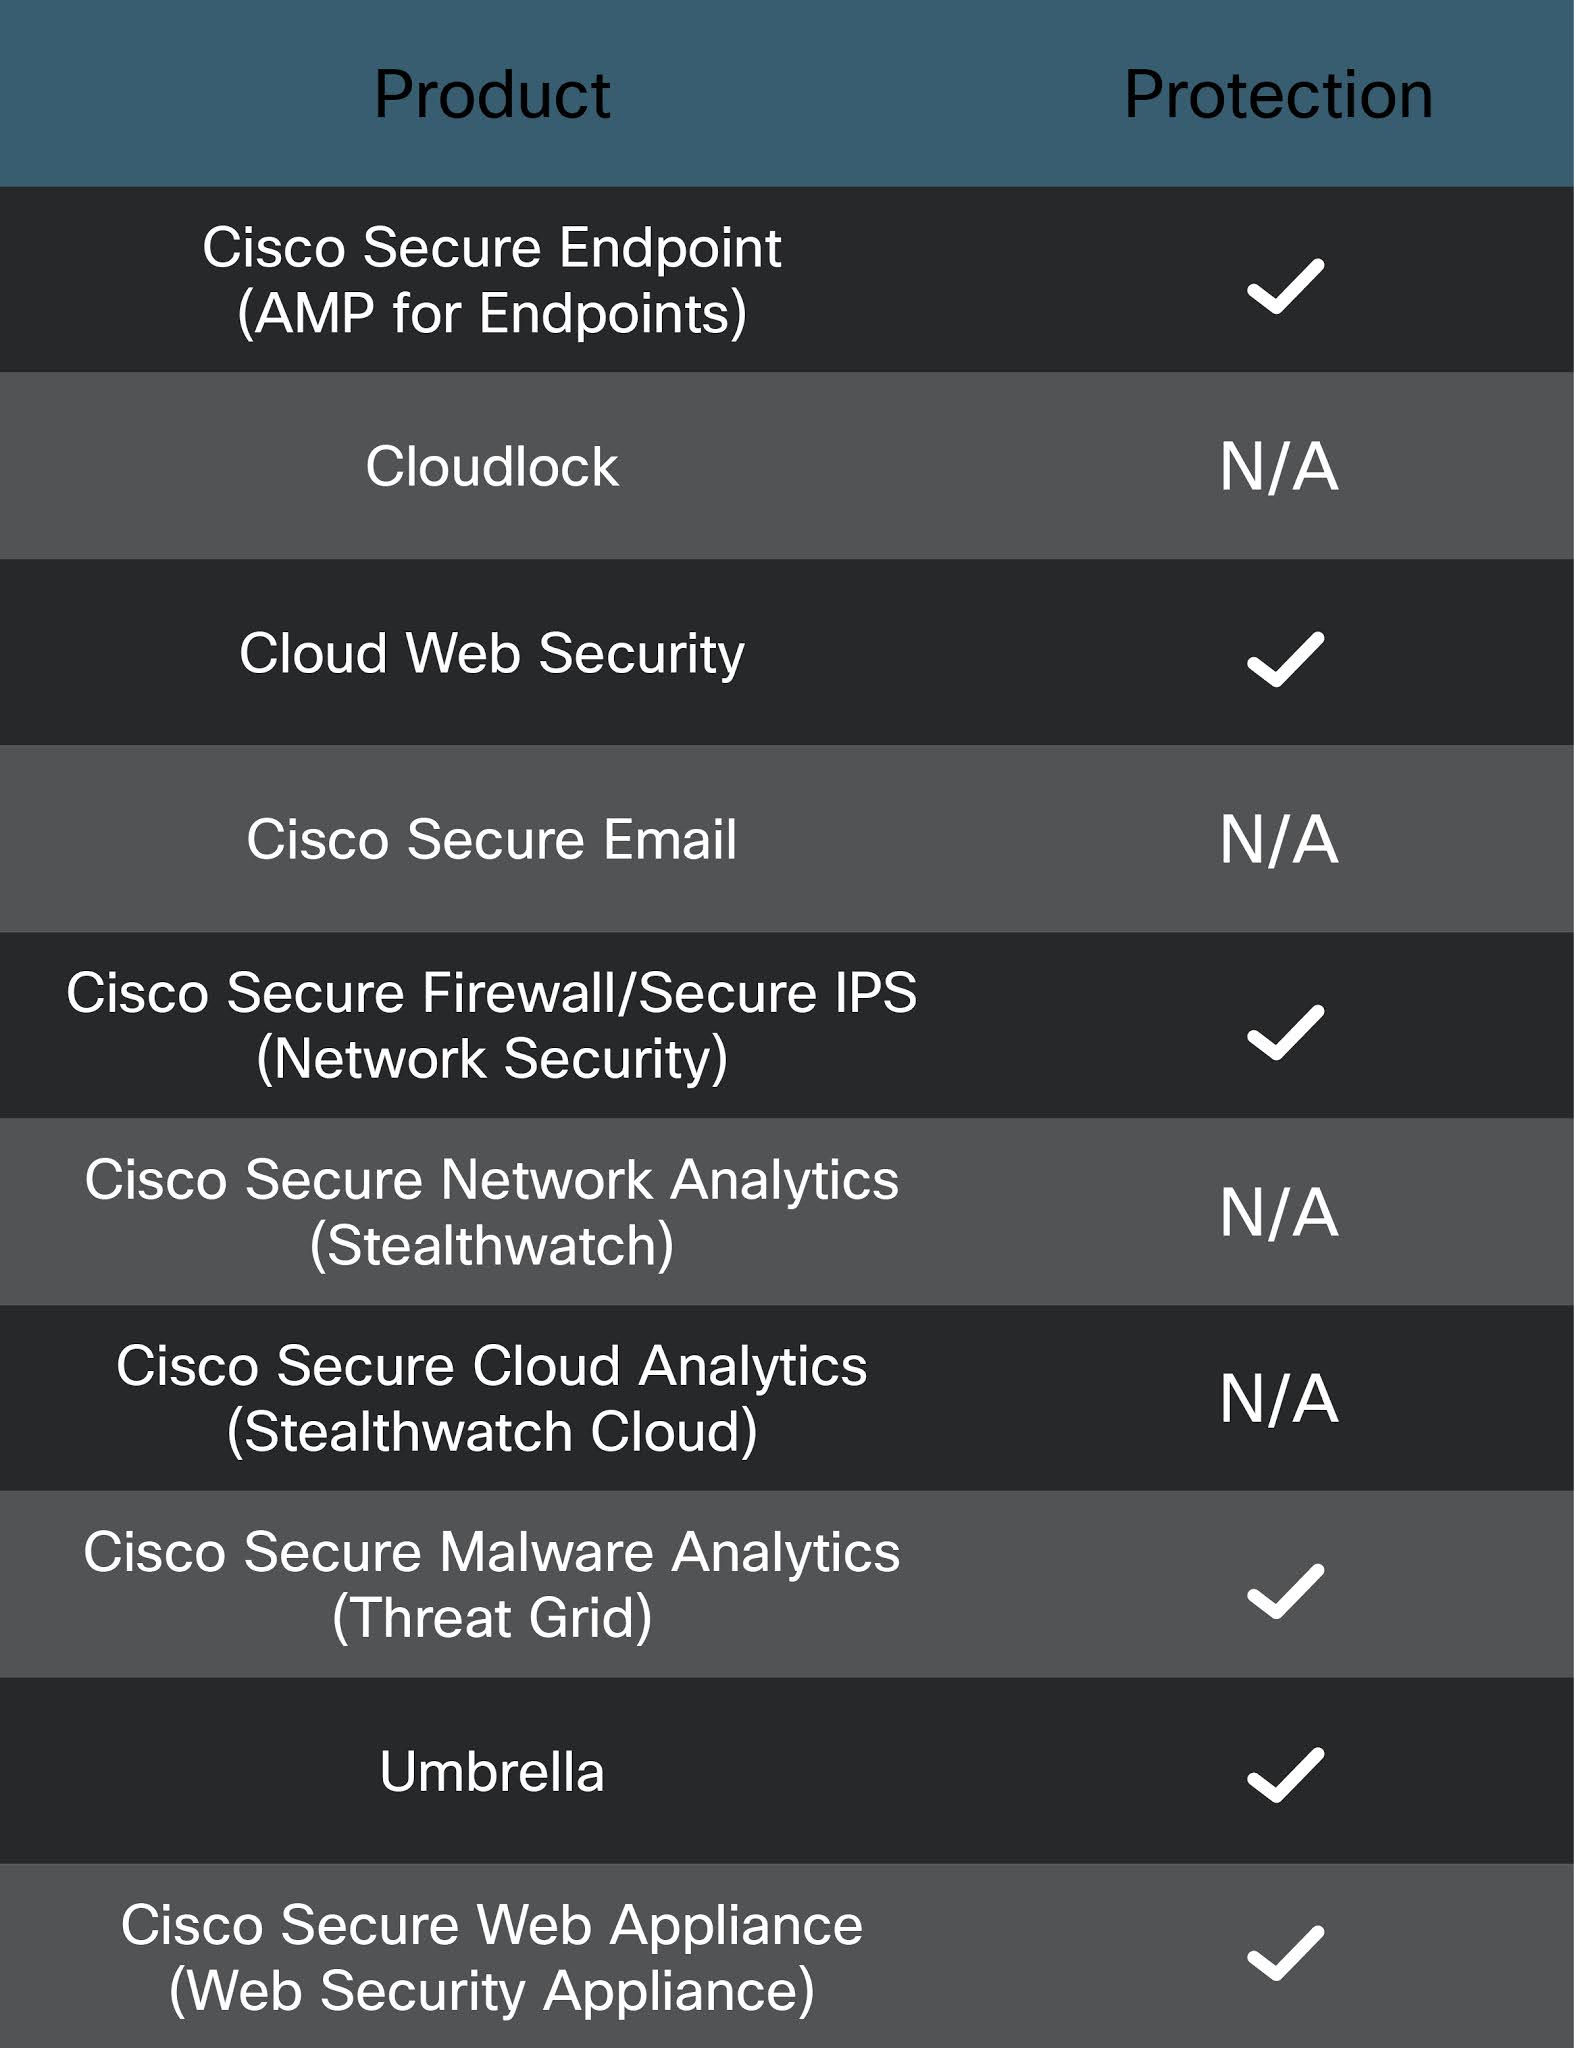 Cisco products that can block LodaRAT